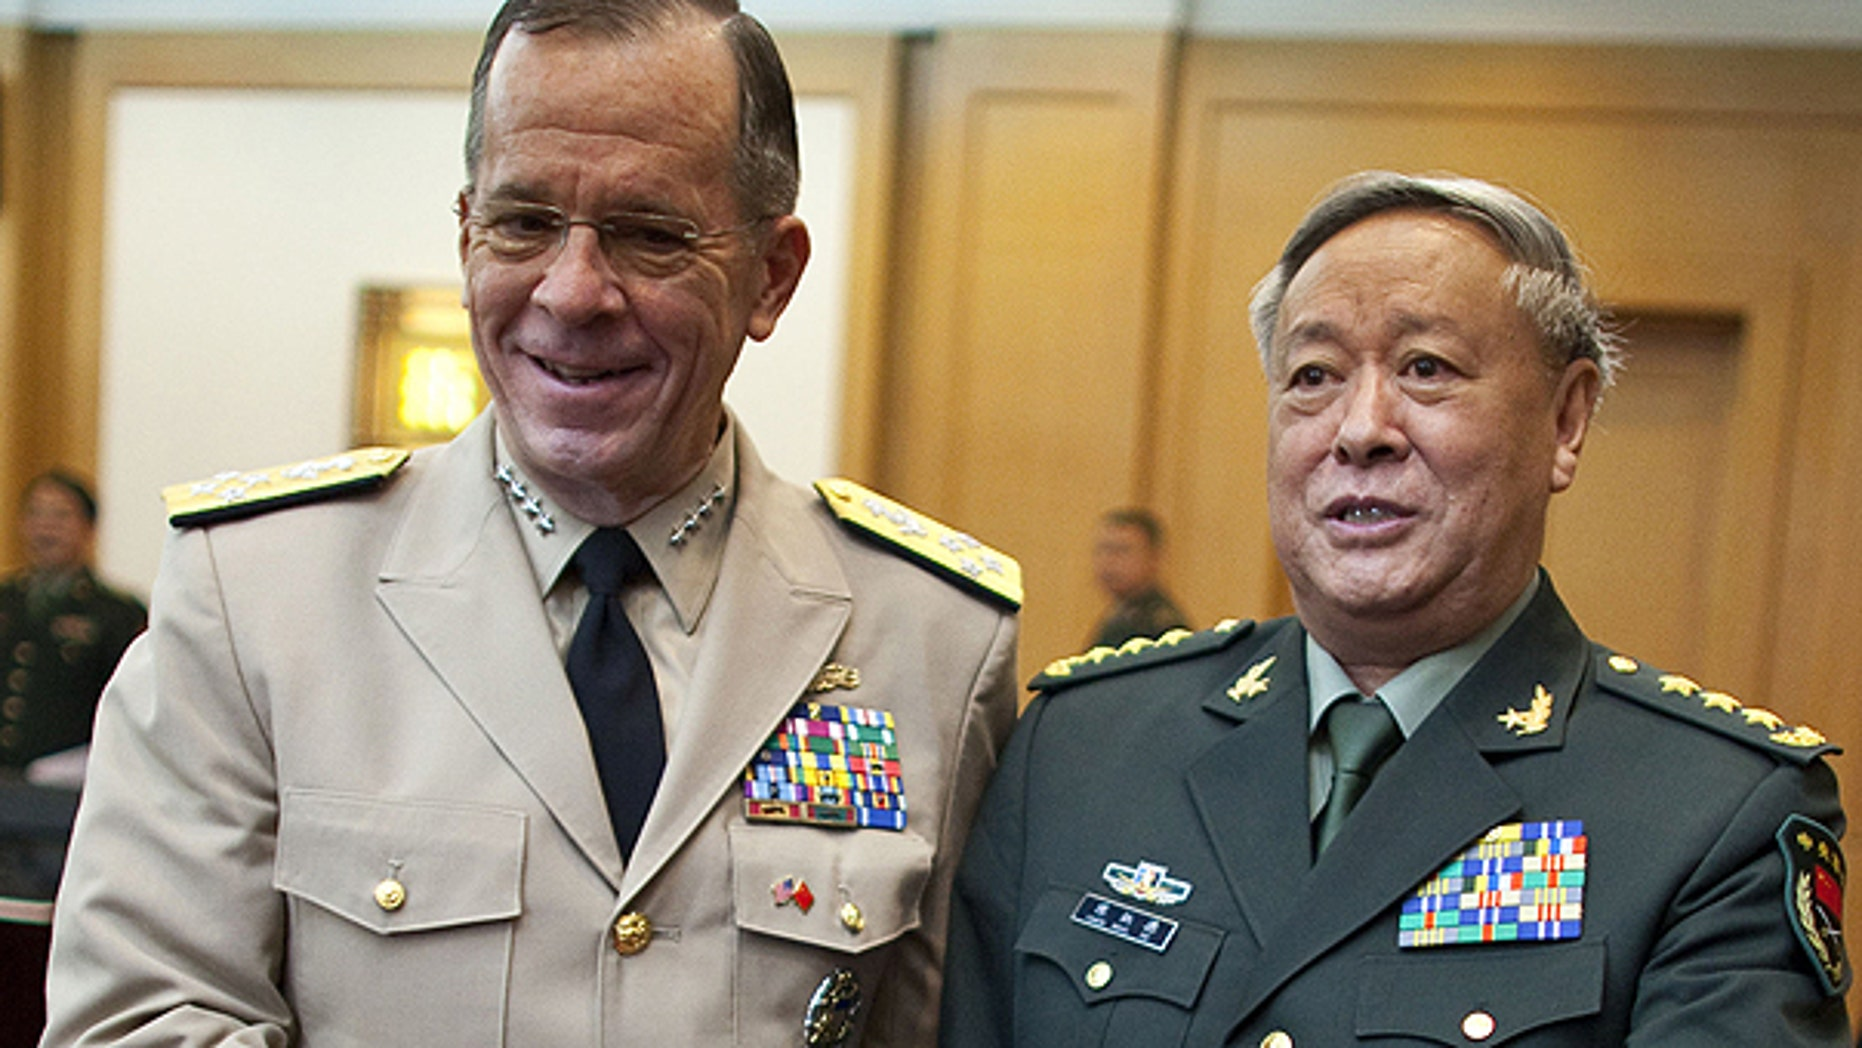 July 11: U.S. Adm. Mike Mullen, left, chairman of the Joint Chiefs of Staff, shakes hands with Gen. Chen Bingde, chief of the General Staff of the Chinese People's Liberation Army, before their meeting at the Bayi Building in Beijing, China.